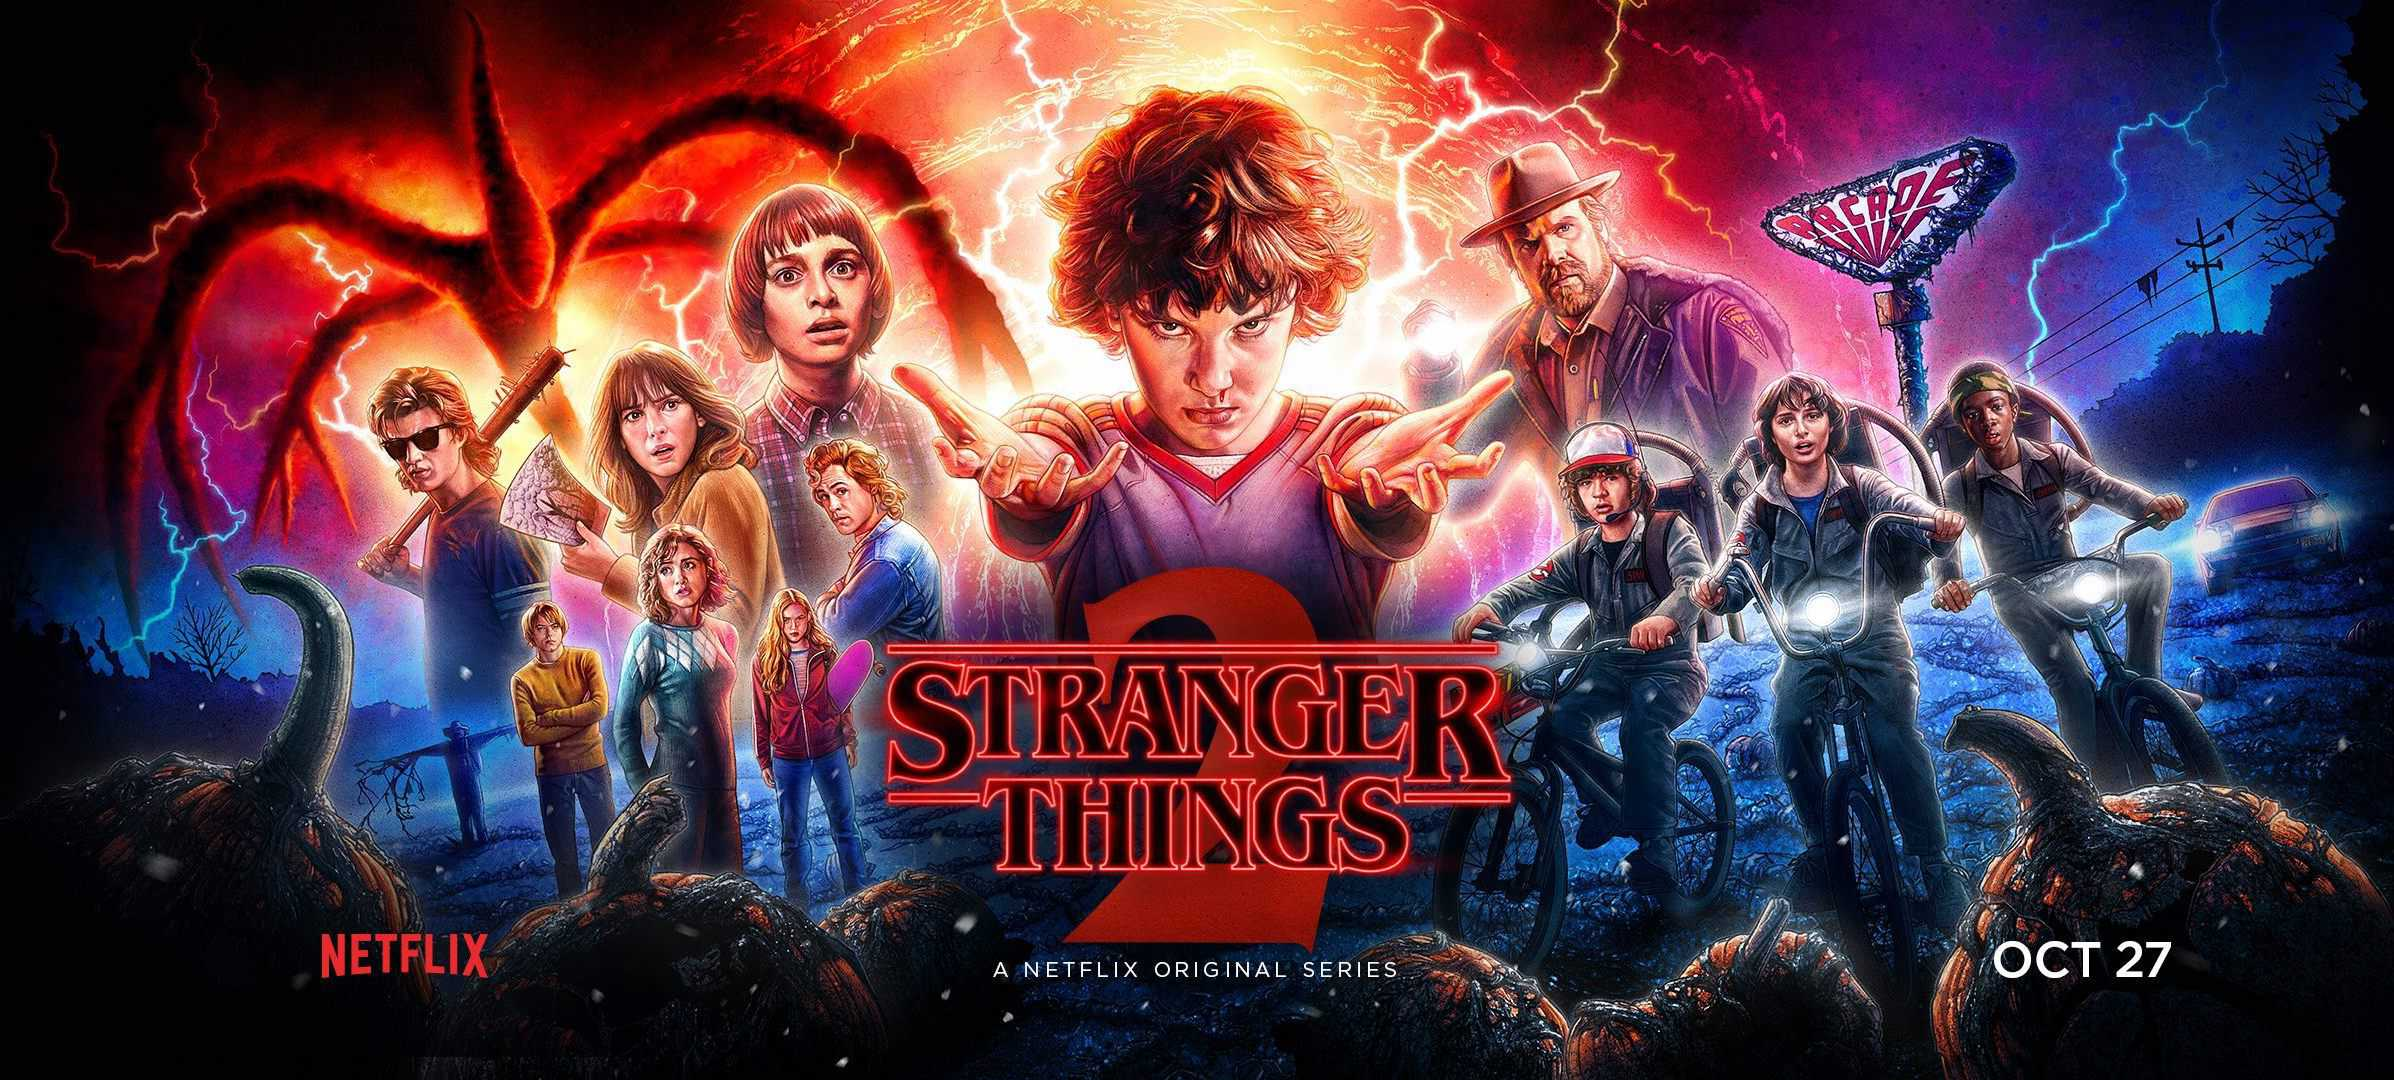 Stranger Things announced for Halloween Horror Nights 2018